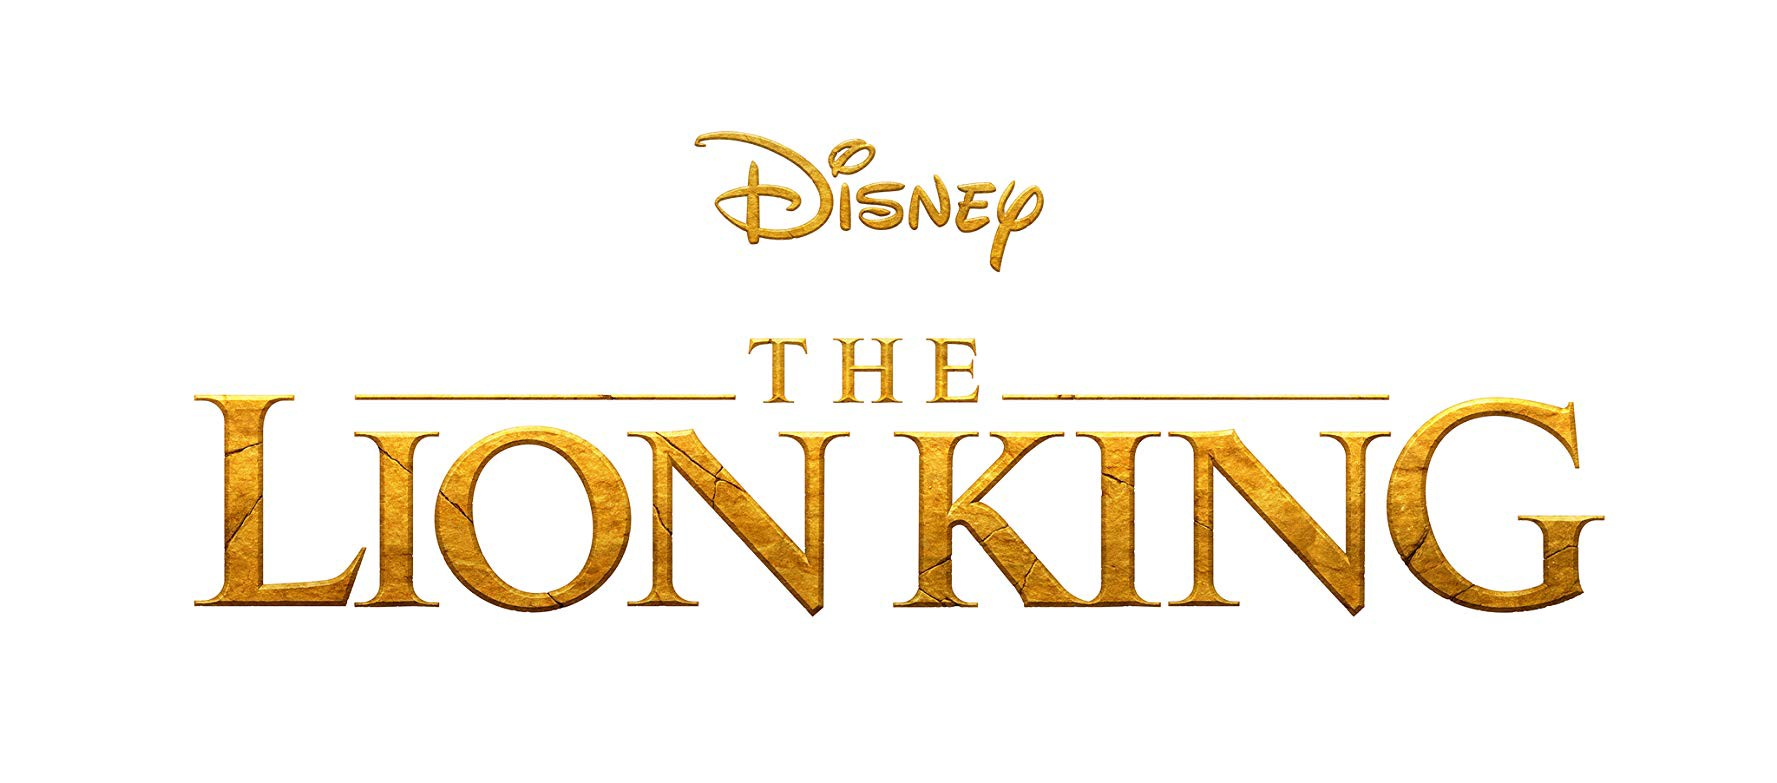 The Lion King (2019) Movies Streaming GOOGLE DRIVE - Kintan Mary